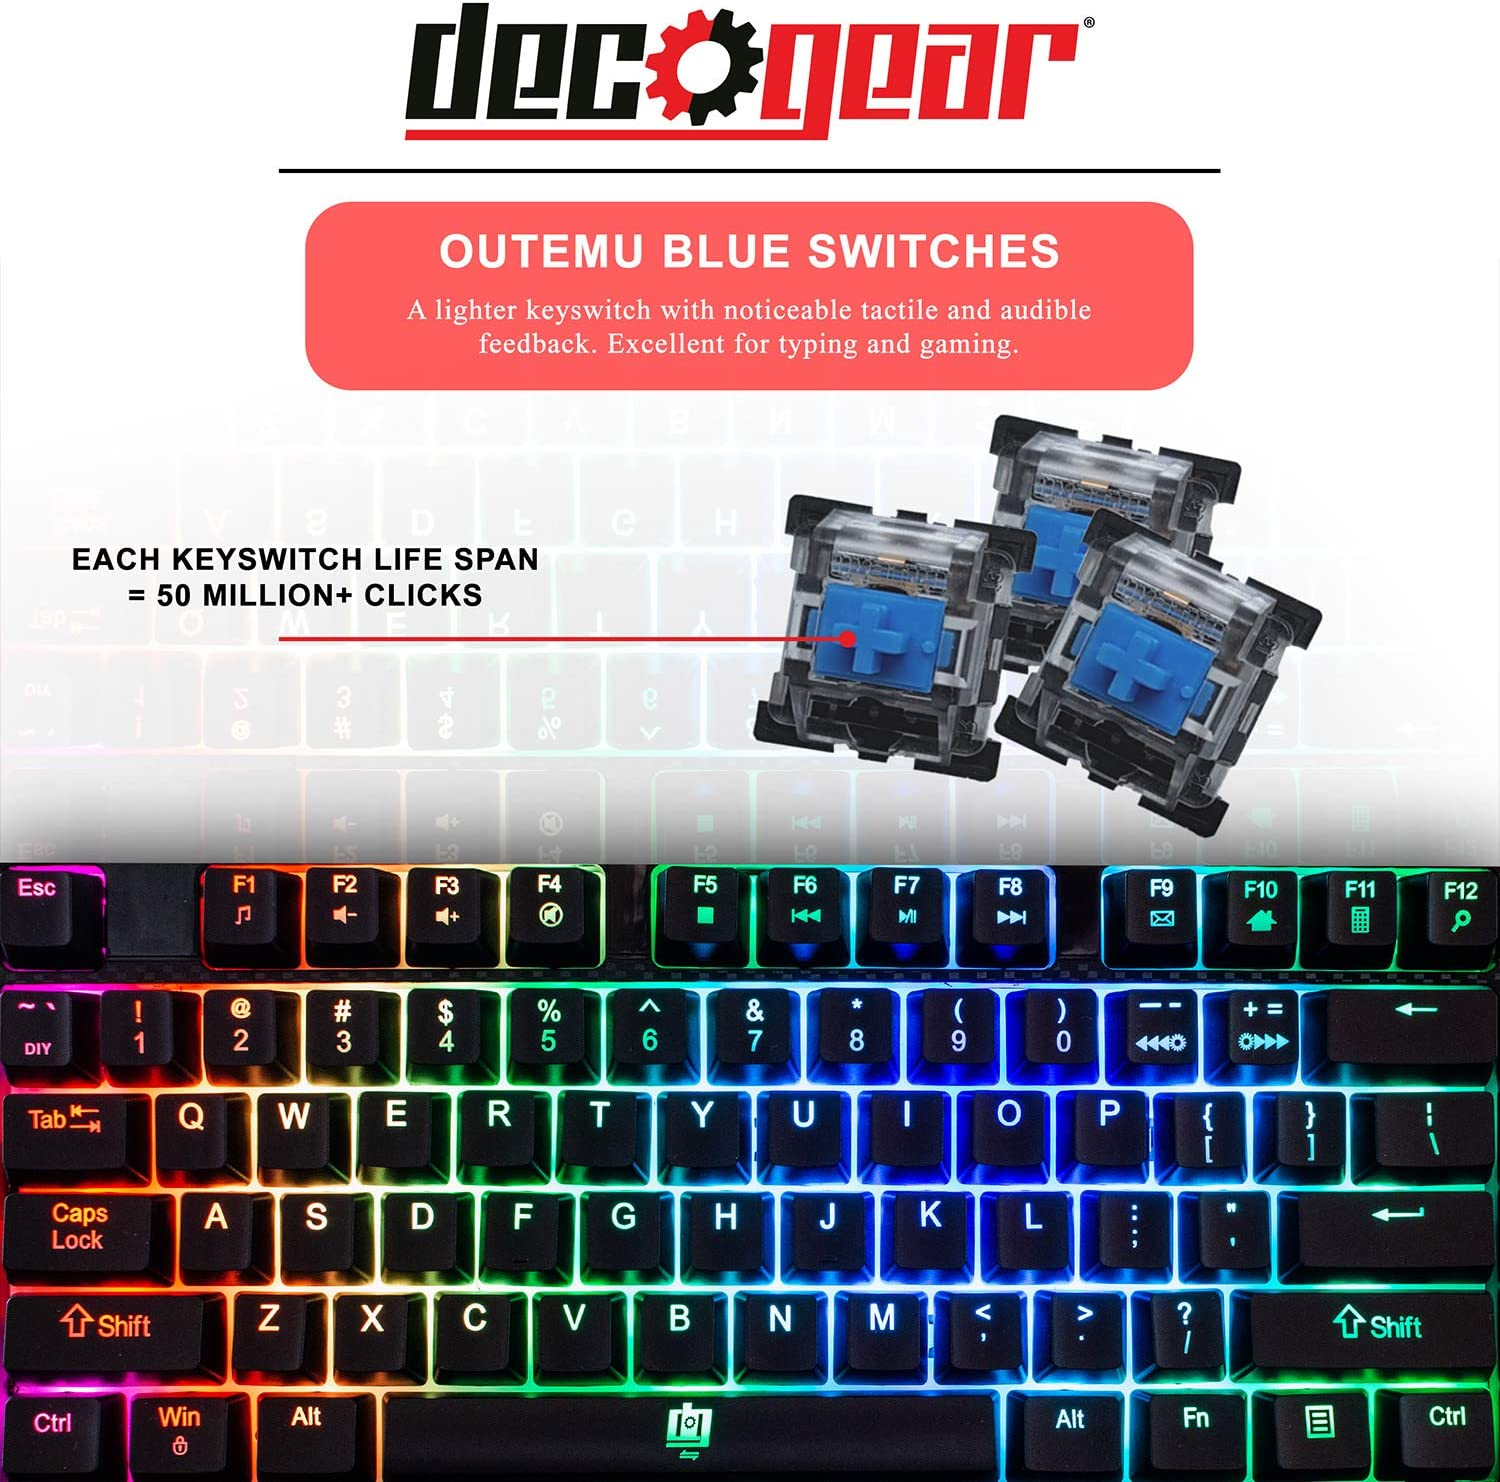 Deco Gear Mechanical Gaming Keyboard Ergonomic Fixed Palm Rest Outemu Blue Switch Black Carbon Fiber Design Anti-Ghosting Wired Full Customizable RGB Backlit